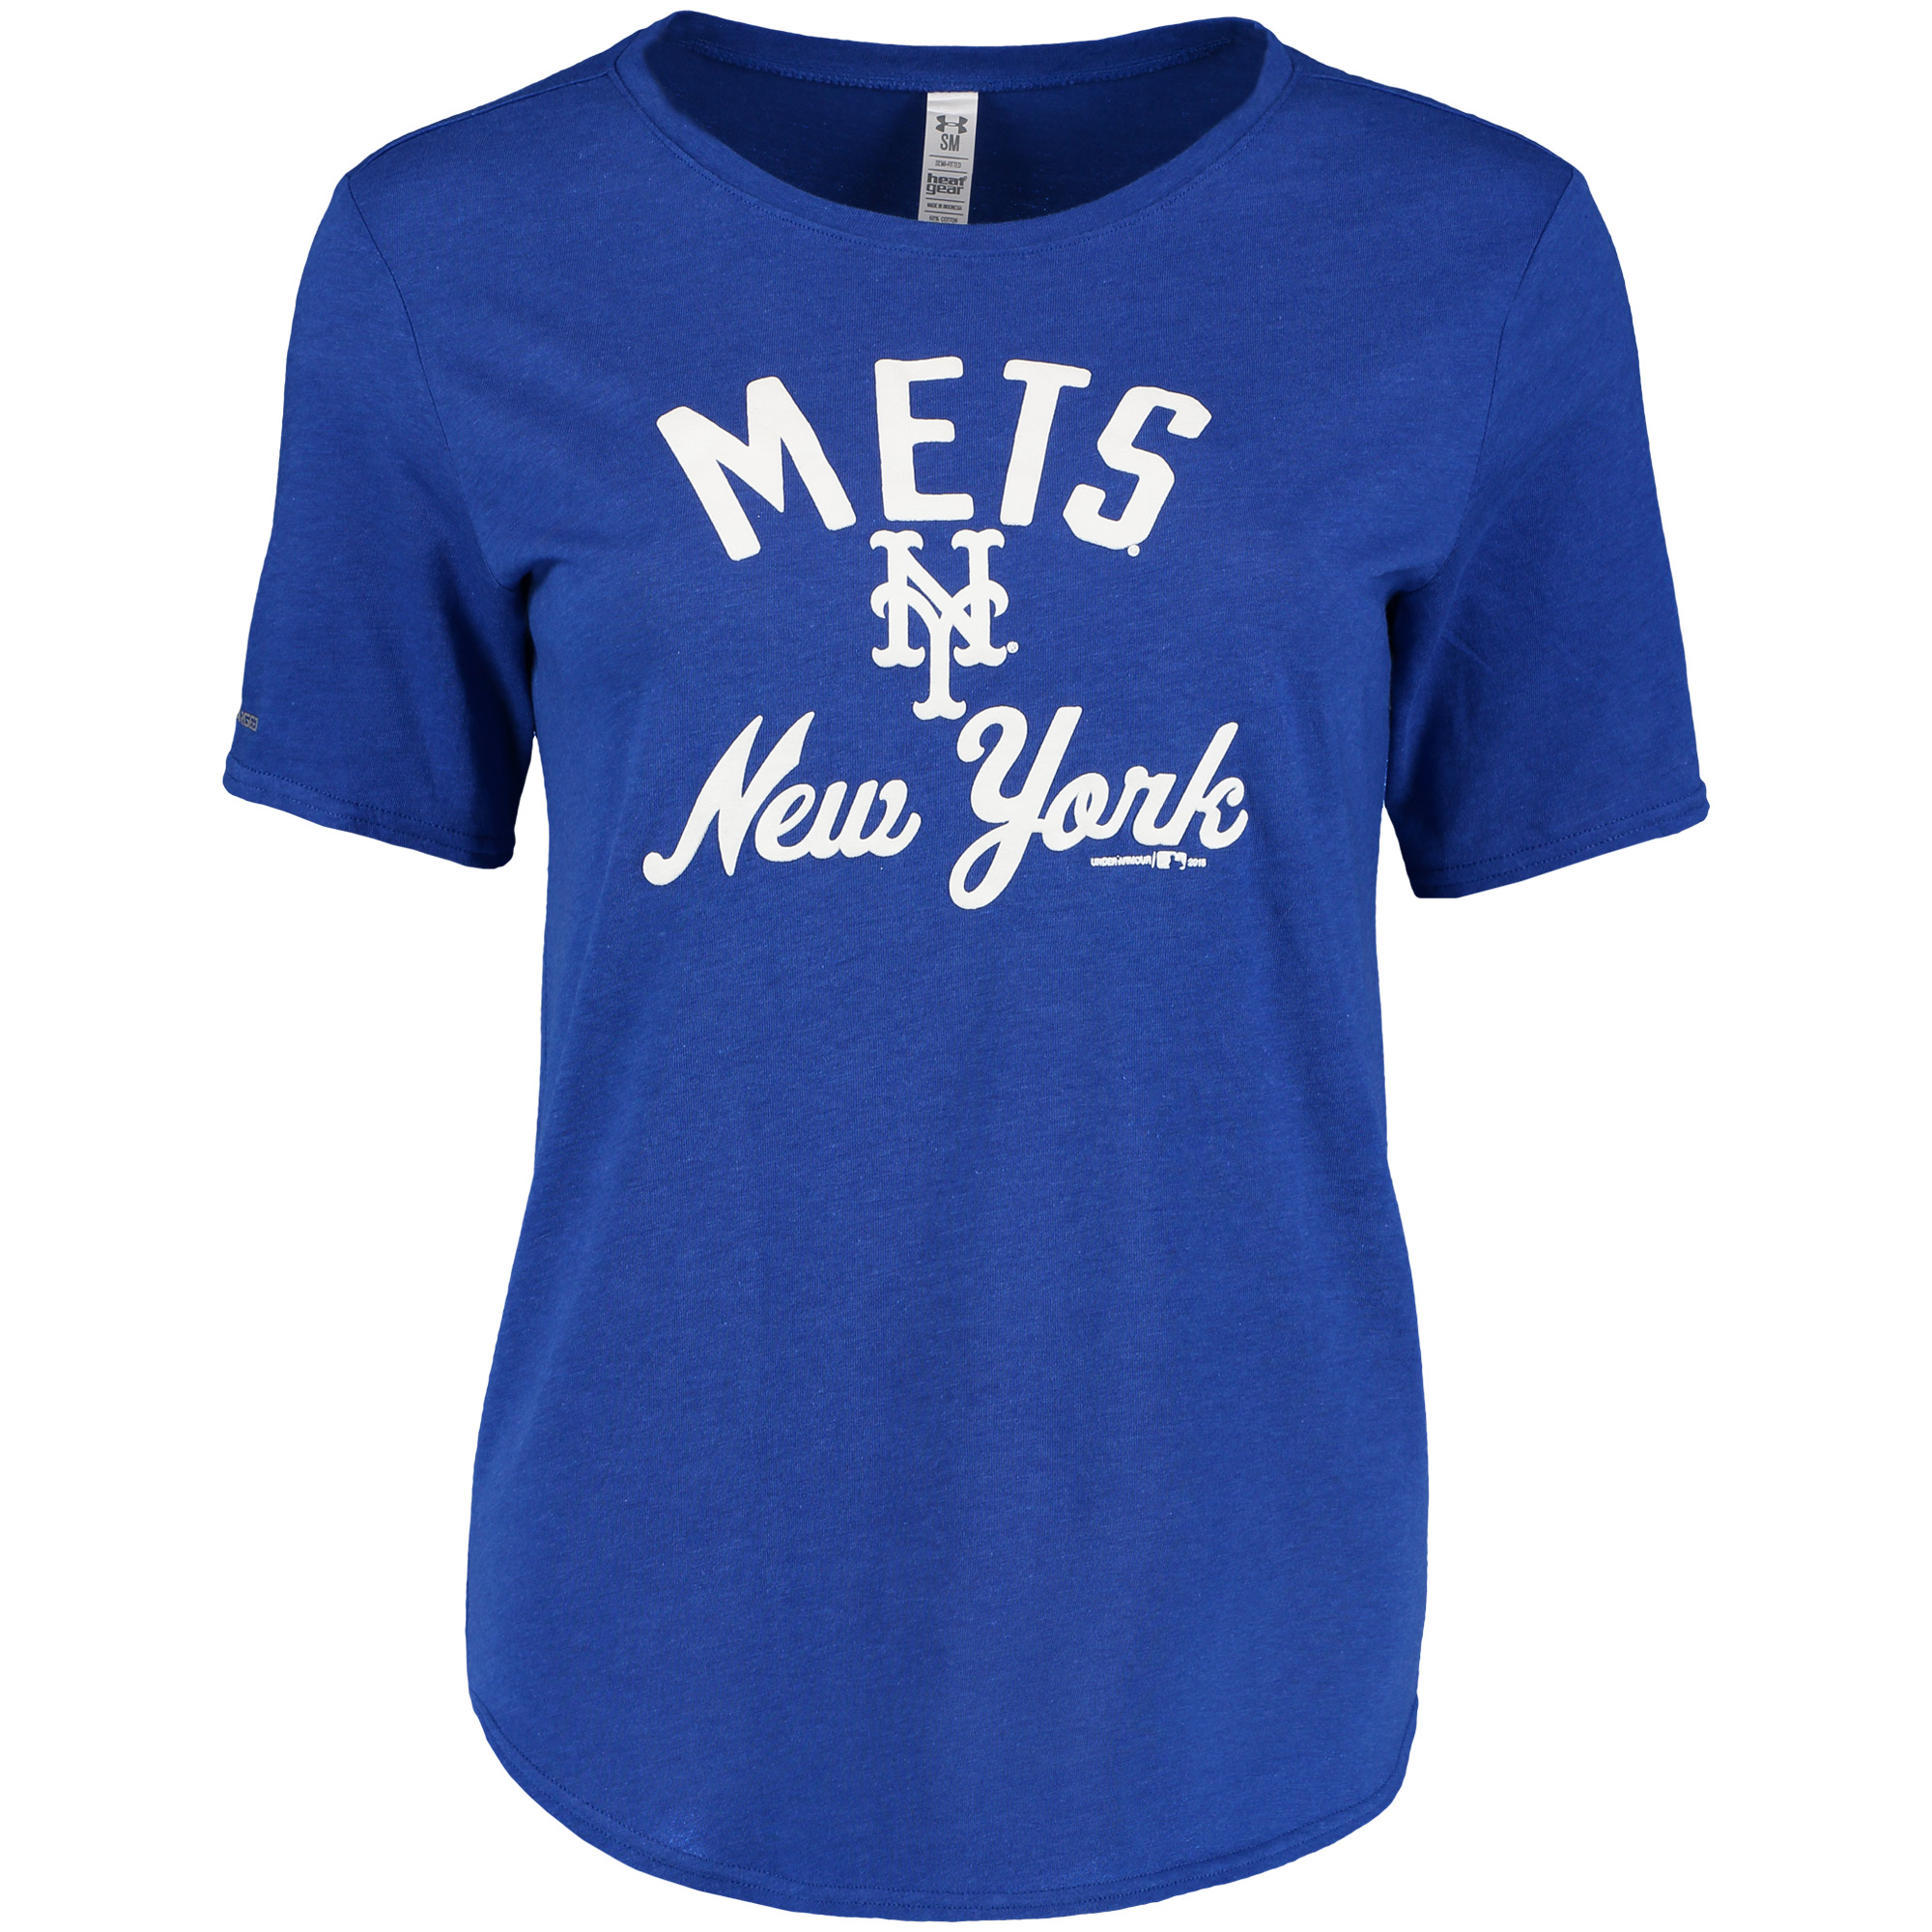 New York Mets Under Armour Women's Rounded Hem Performance T-Shirt - Royal